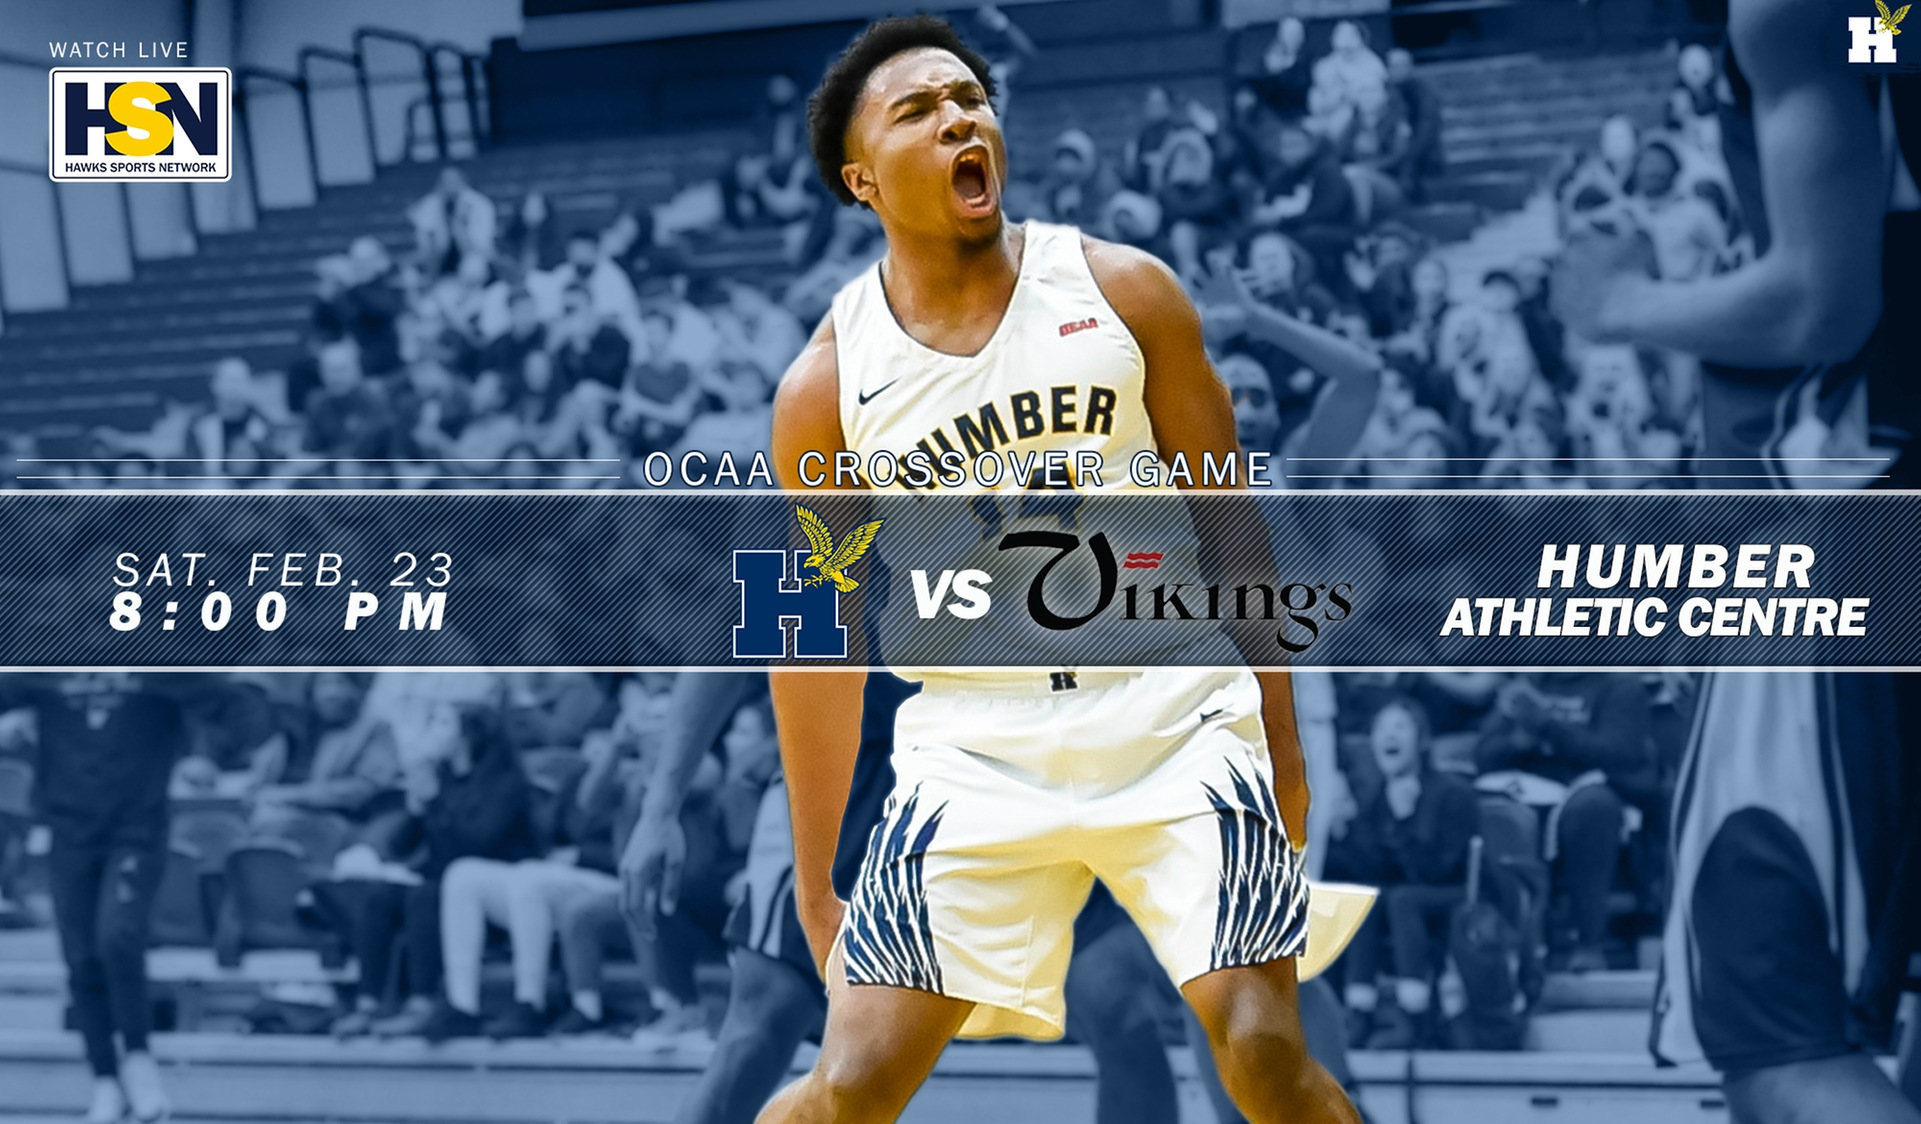 No. 5 HUMBER SET TO HOST ST. LAWRENCE IN CROSSOVER GAME SATURDAY